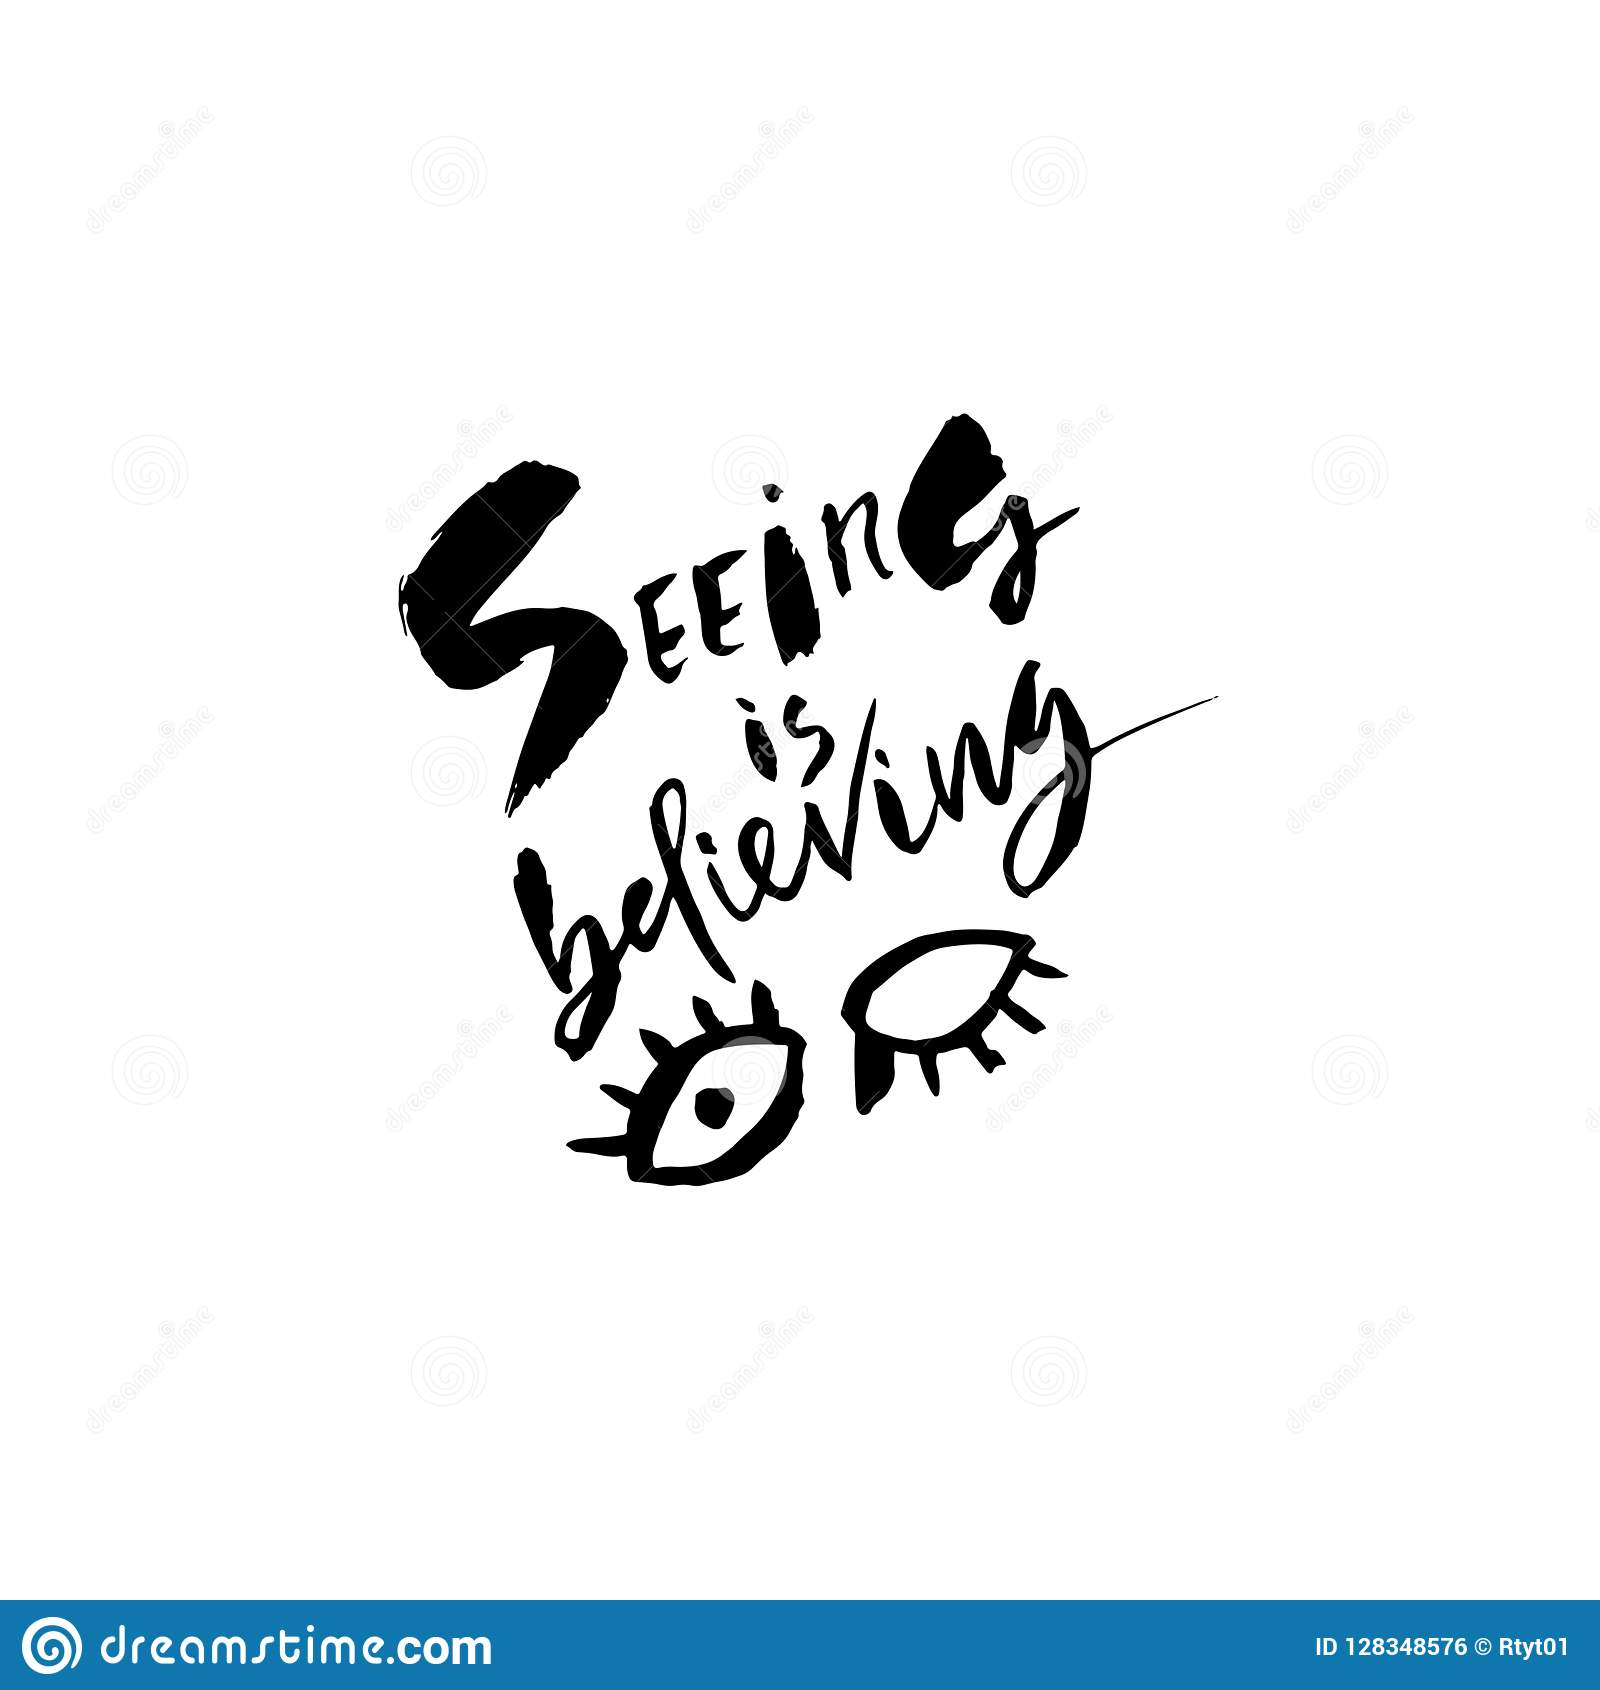 f8385598f4 Seeing is believing. Hand drawn dry brush lettering. Ink illustration.  Modern calligraphy phrase. Vector illustration.